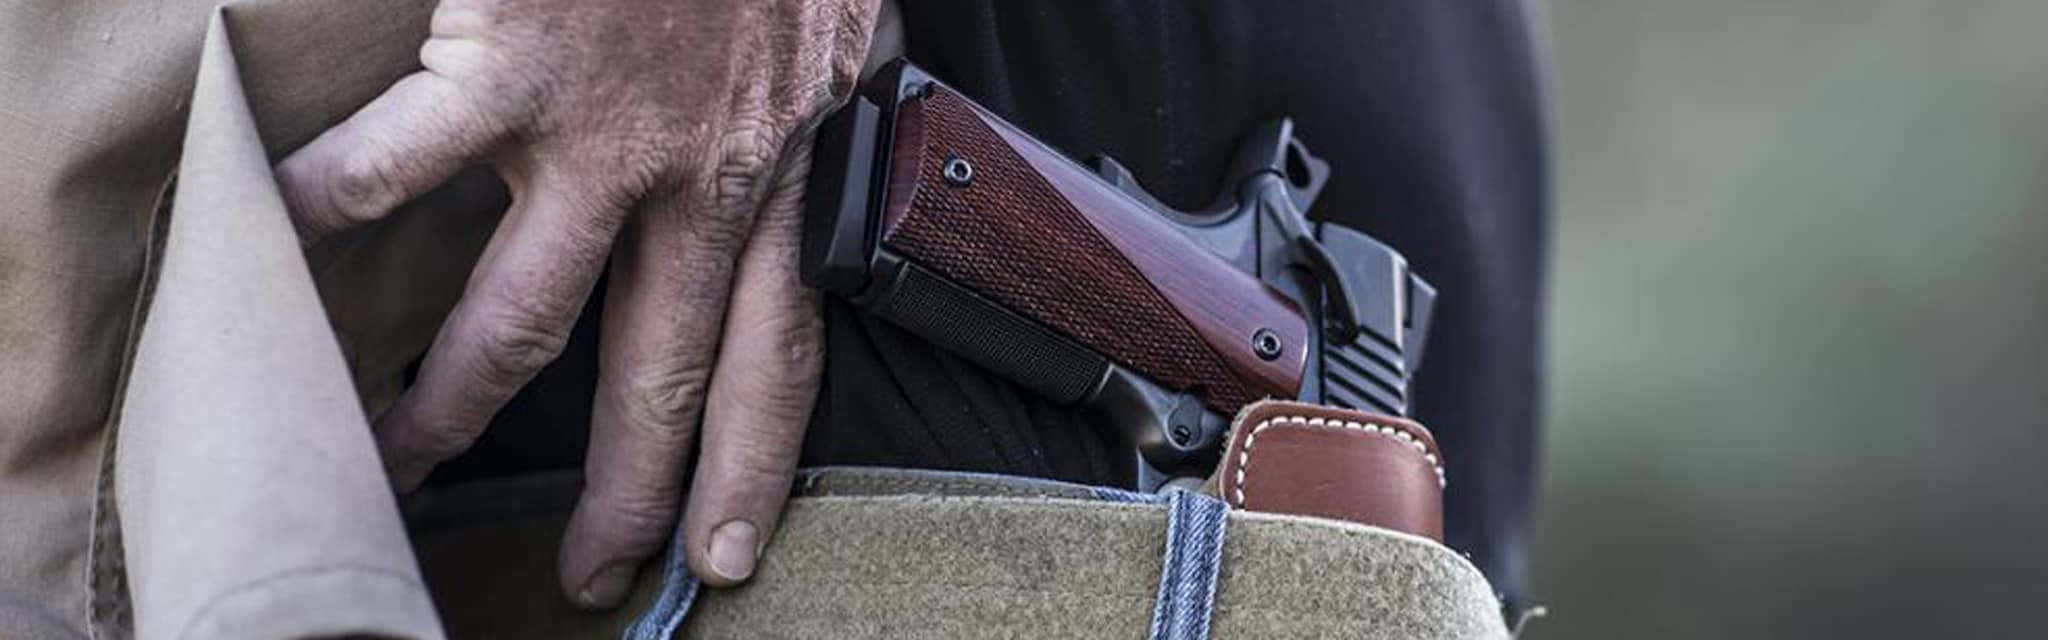 Concealed Carry Brand Page